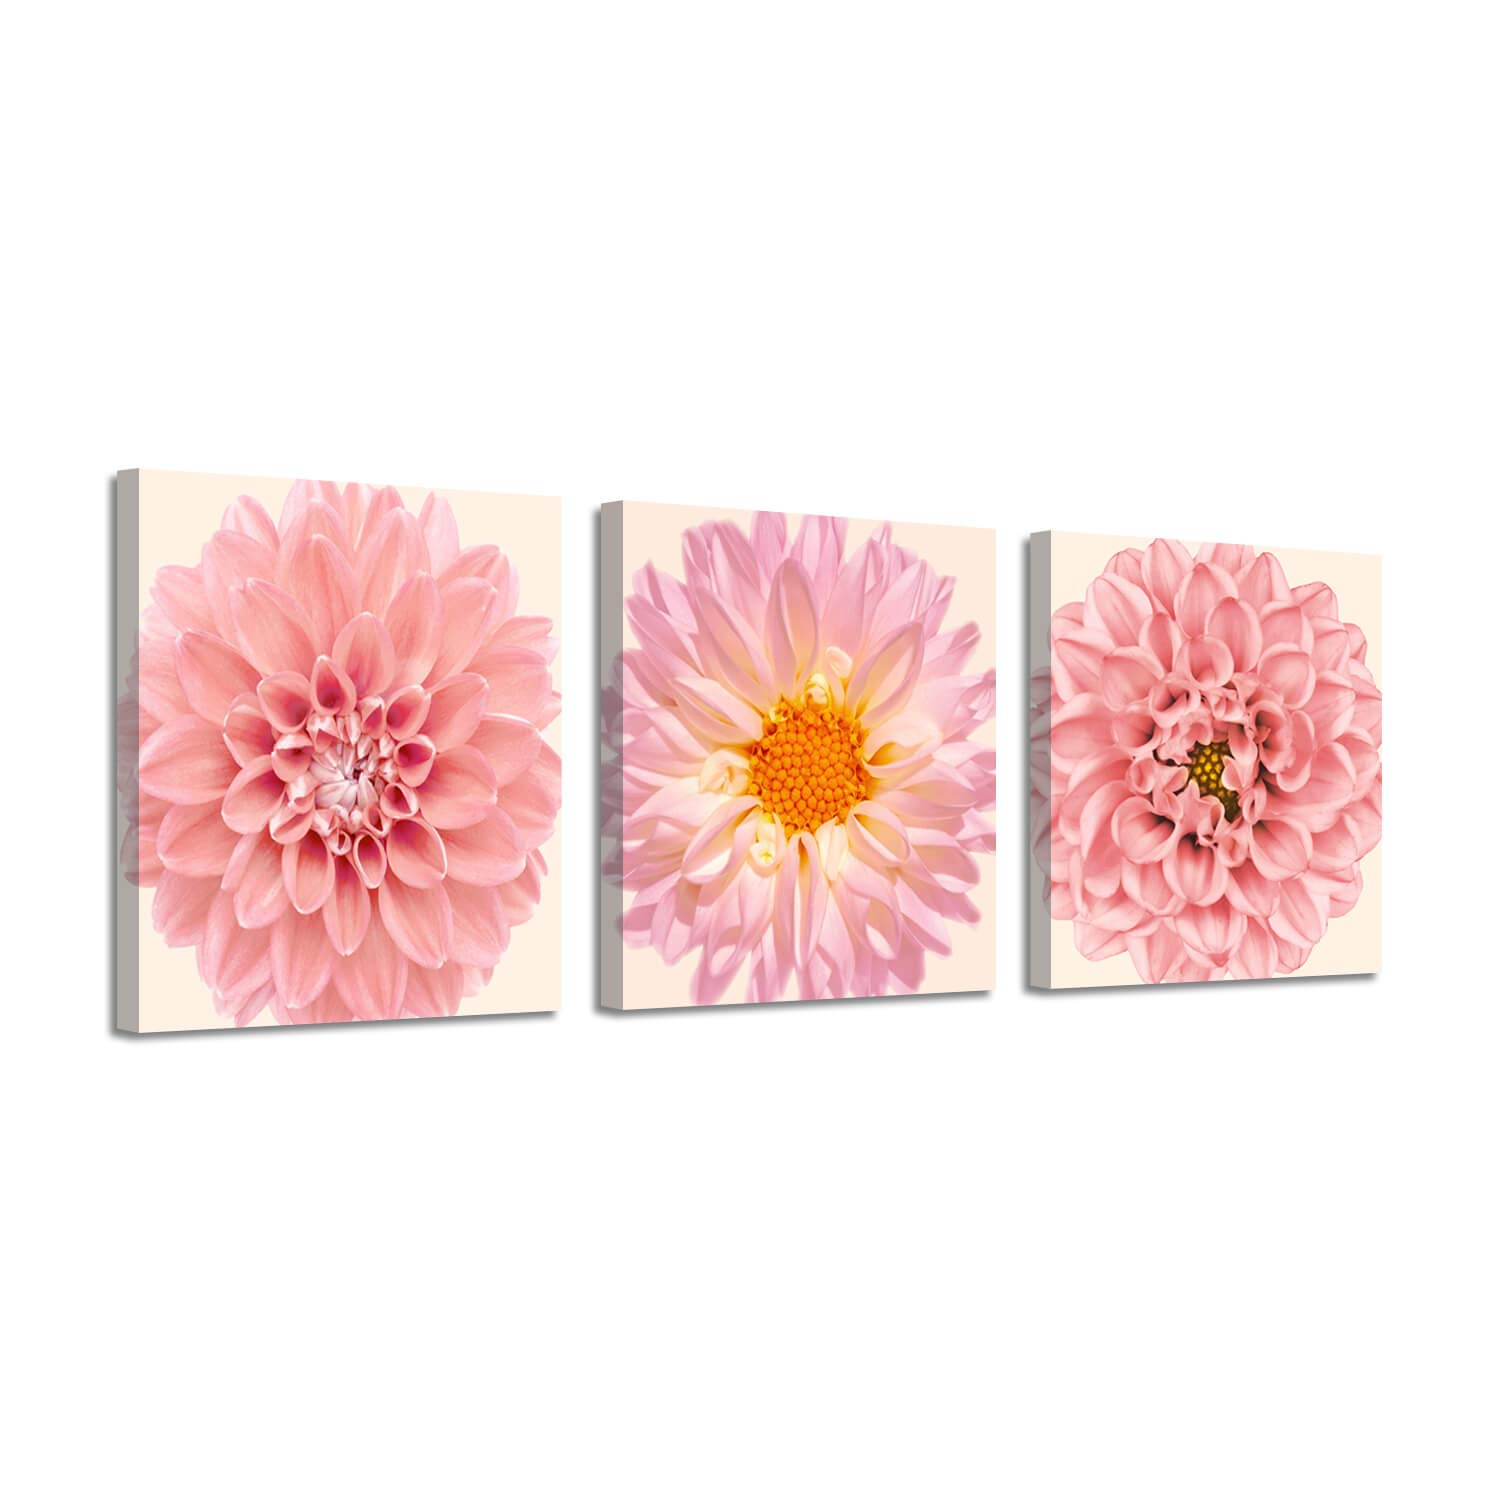 Flower Picture Floral Artwork Prints: Pink Gerbera Daisy Paintings on Canvas Set